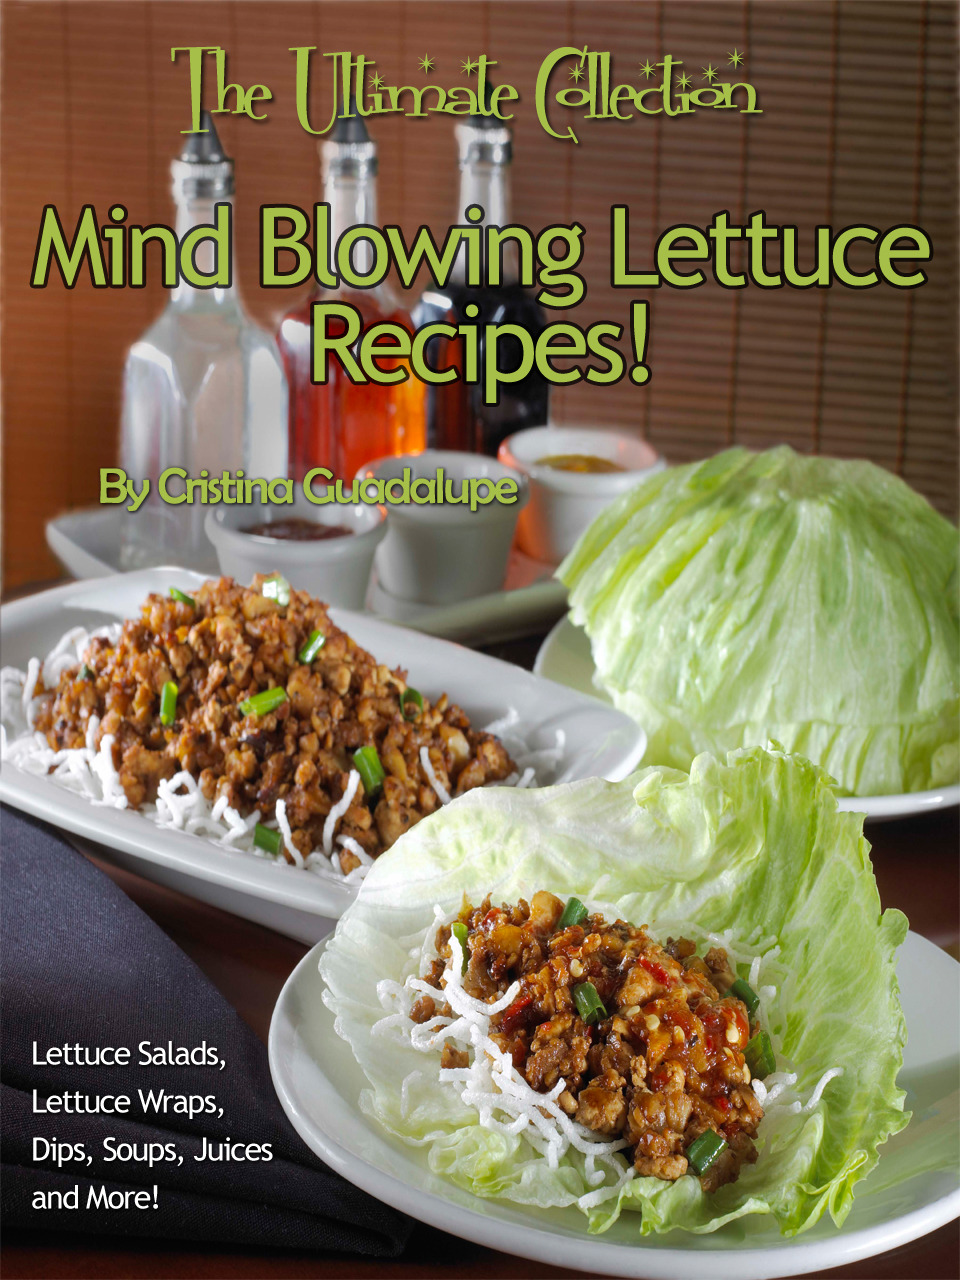 Mind Blowing Lettuce Recipes! Lettuce Salads, Lettuce Wraps, Dips, Soups, Juices and More! The Ultimate Collection